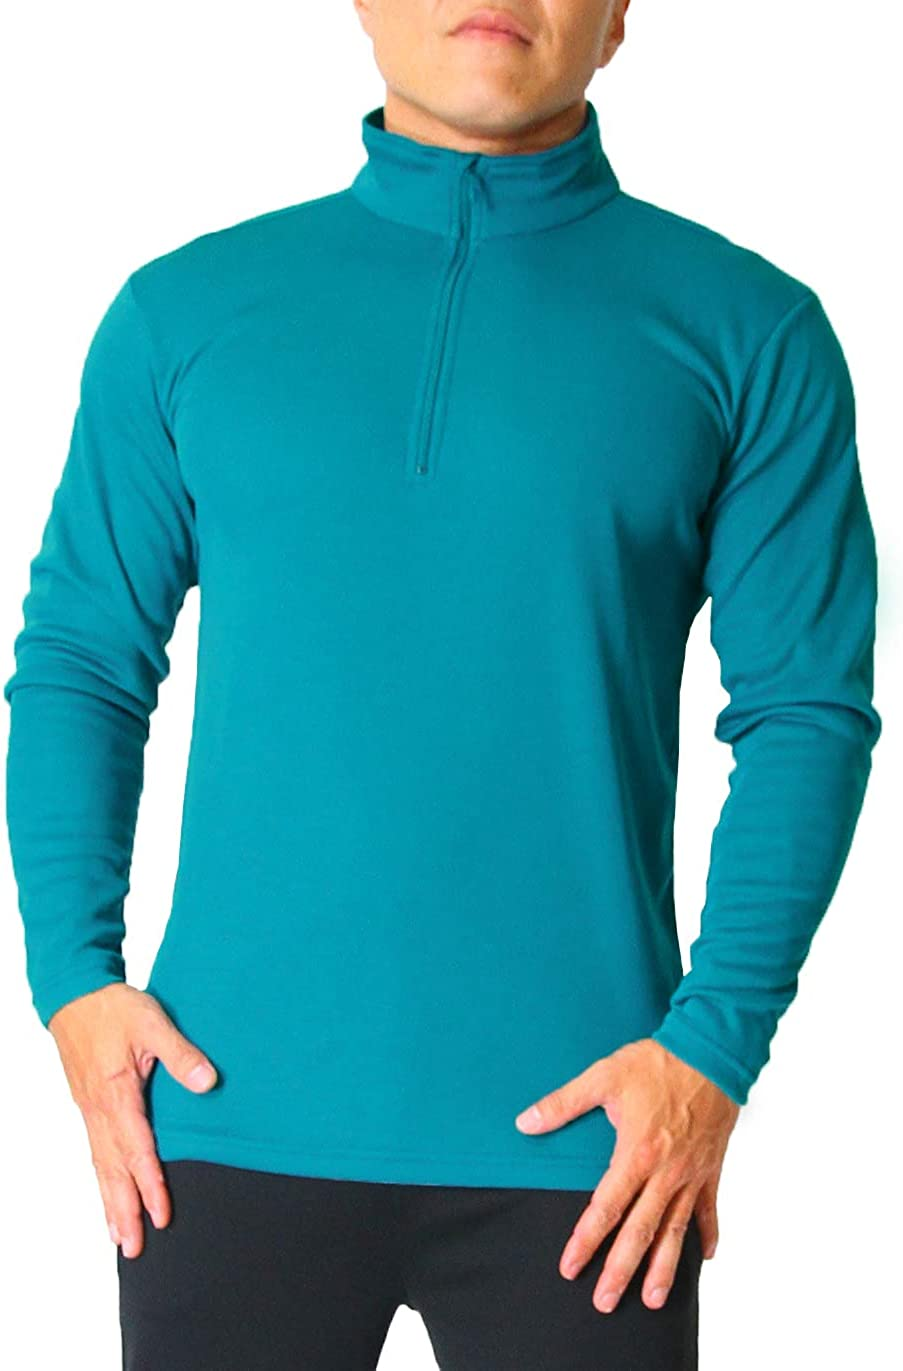 M - 3XL Odor Control /& Quick-Dry Active Sports Shirt for Hiking Sports Litume Mens Long Sleeve Shirt with Zip Running